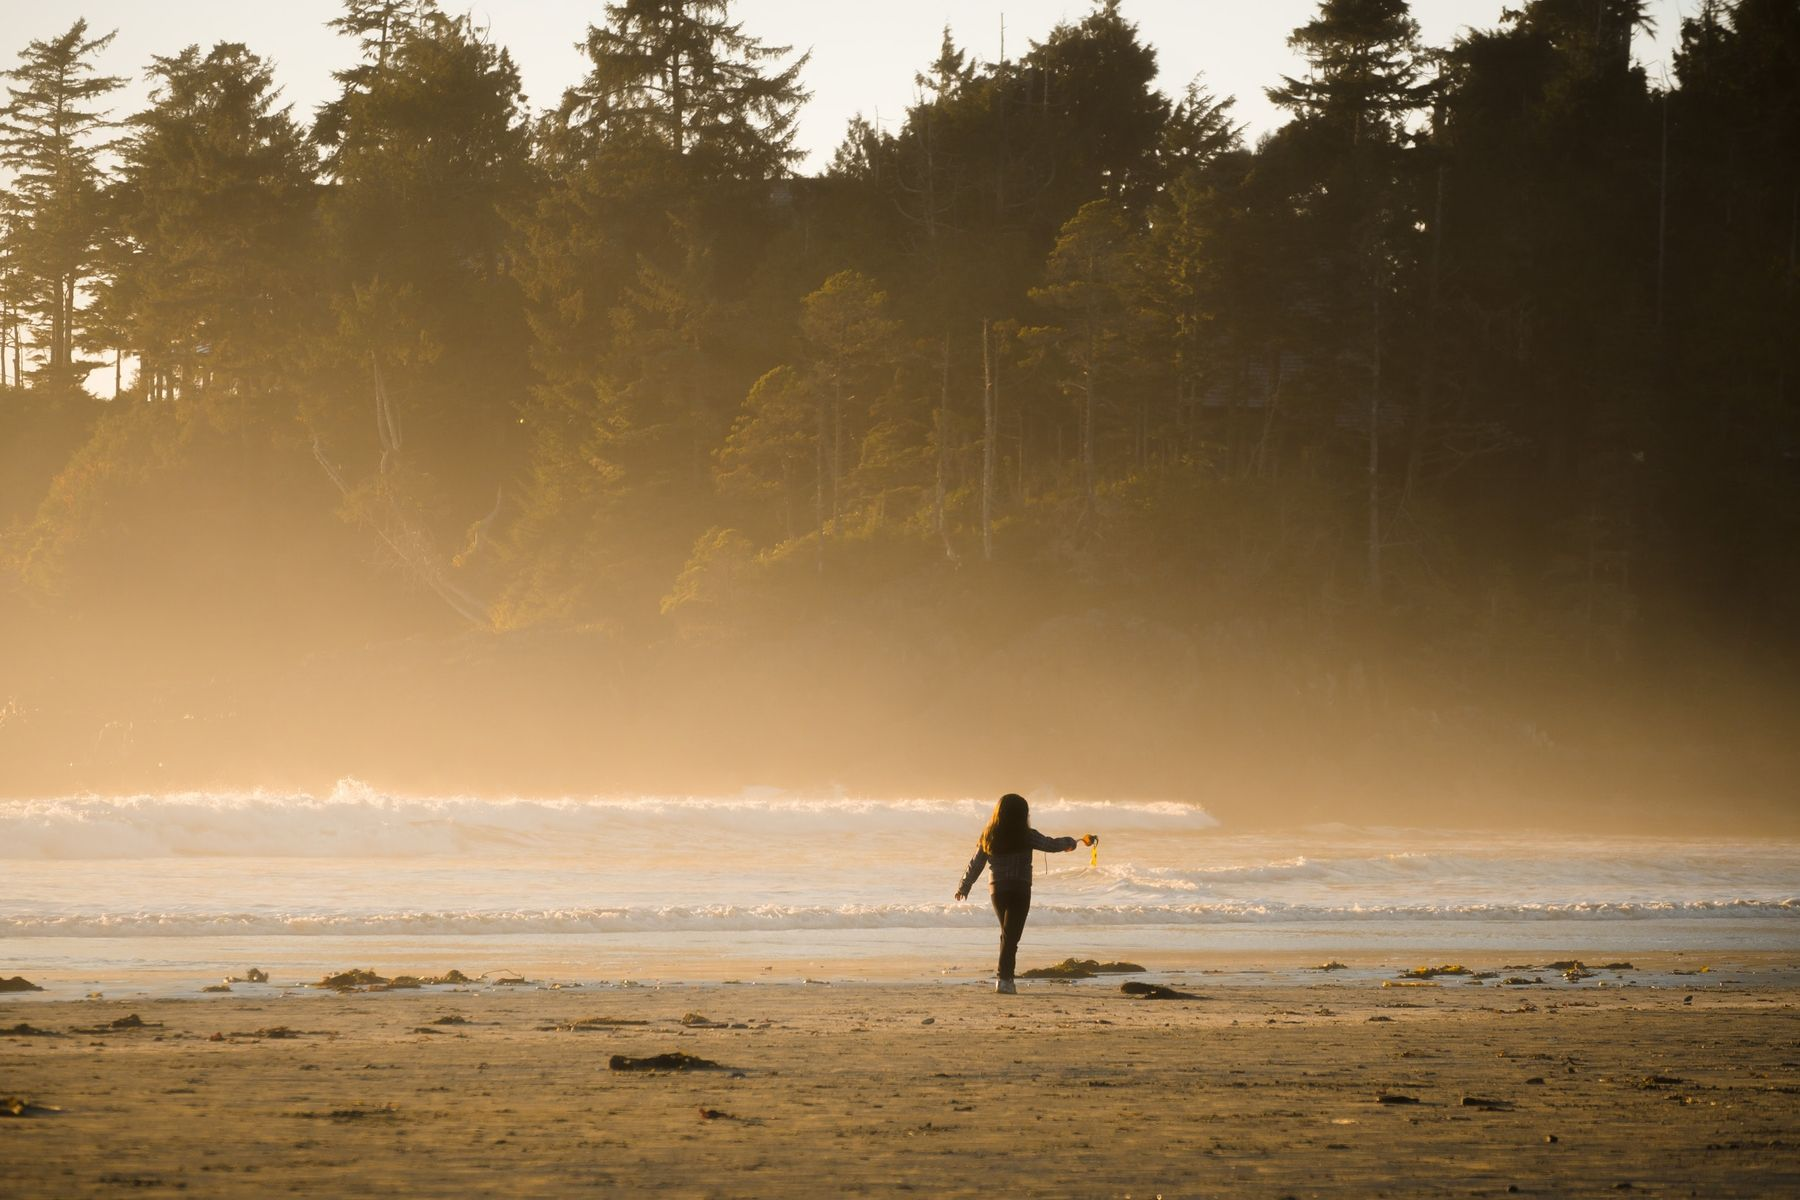 girl walking along the beach in Tofino, BC on a misty day